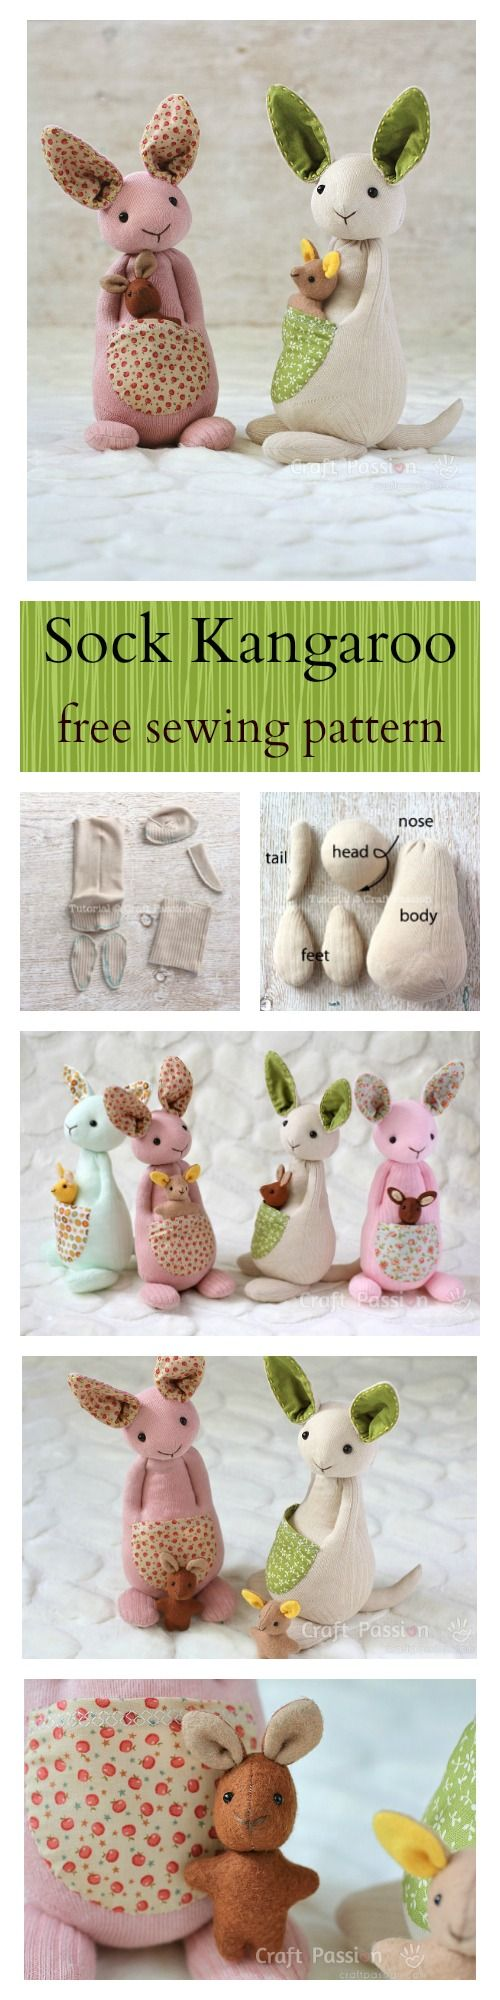 sock kangaroo free sewing pattern Great for Mothers day Baby Shower